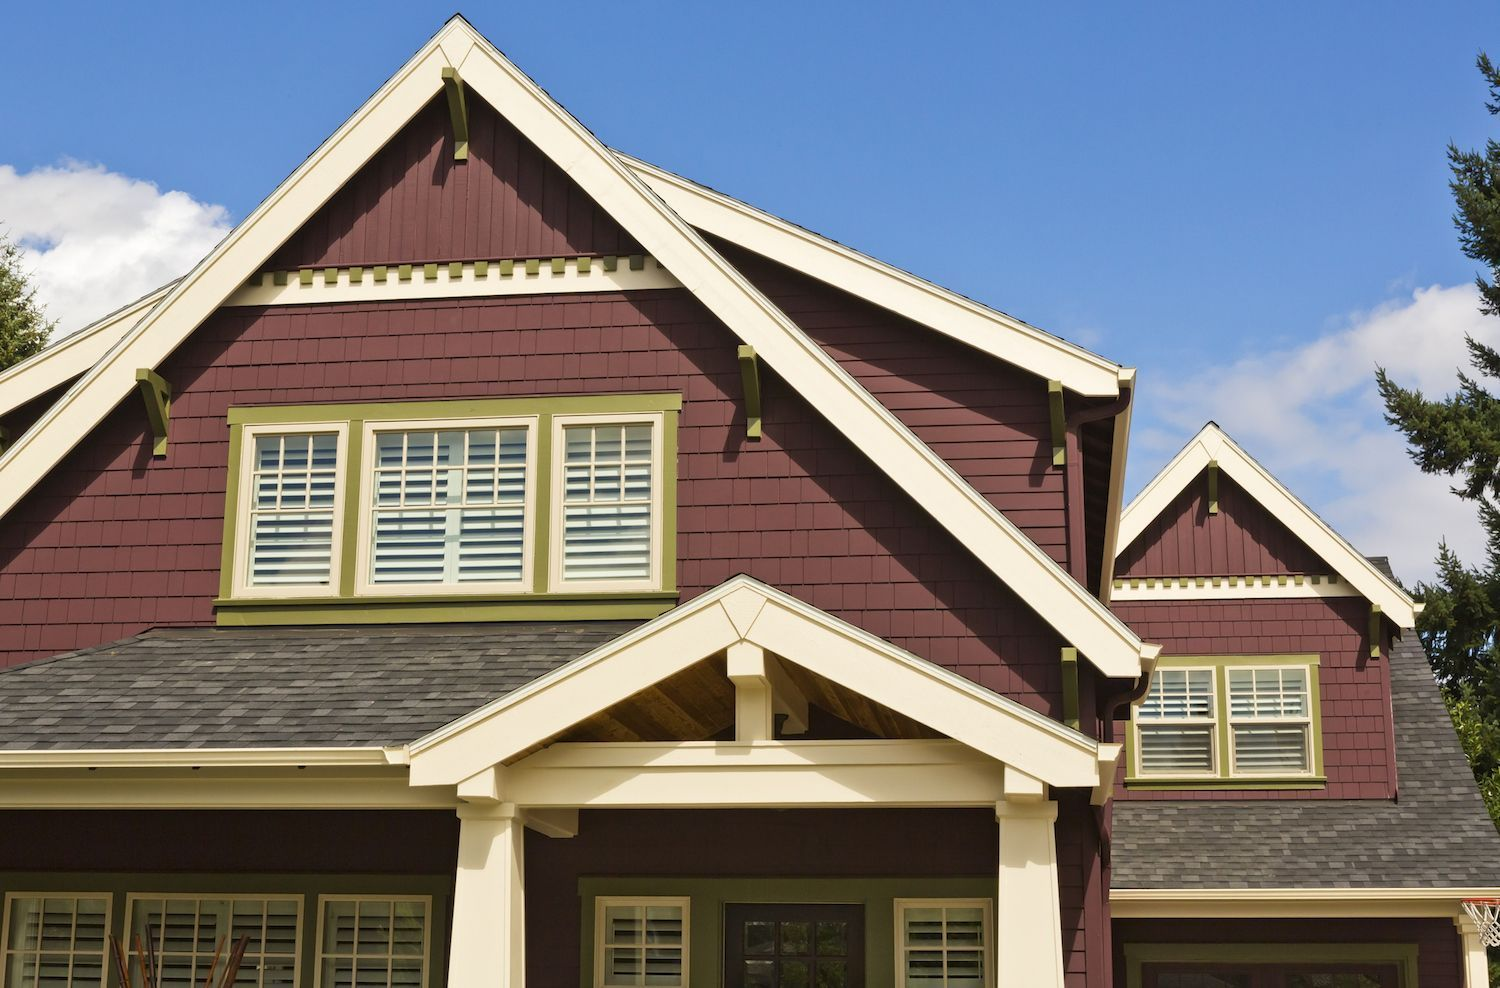 Beau How To Choose Exterior Paint Colors With A Visualizer. Improve Your Curb  Appeal With The